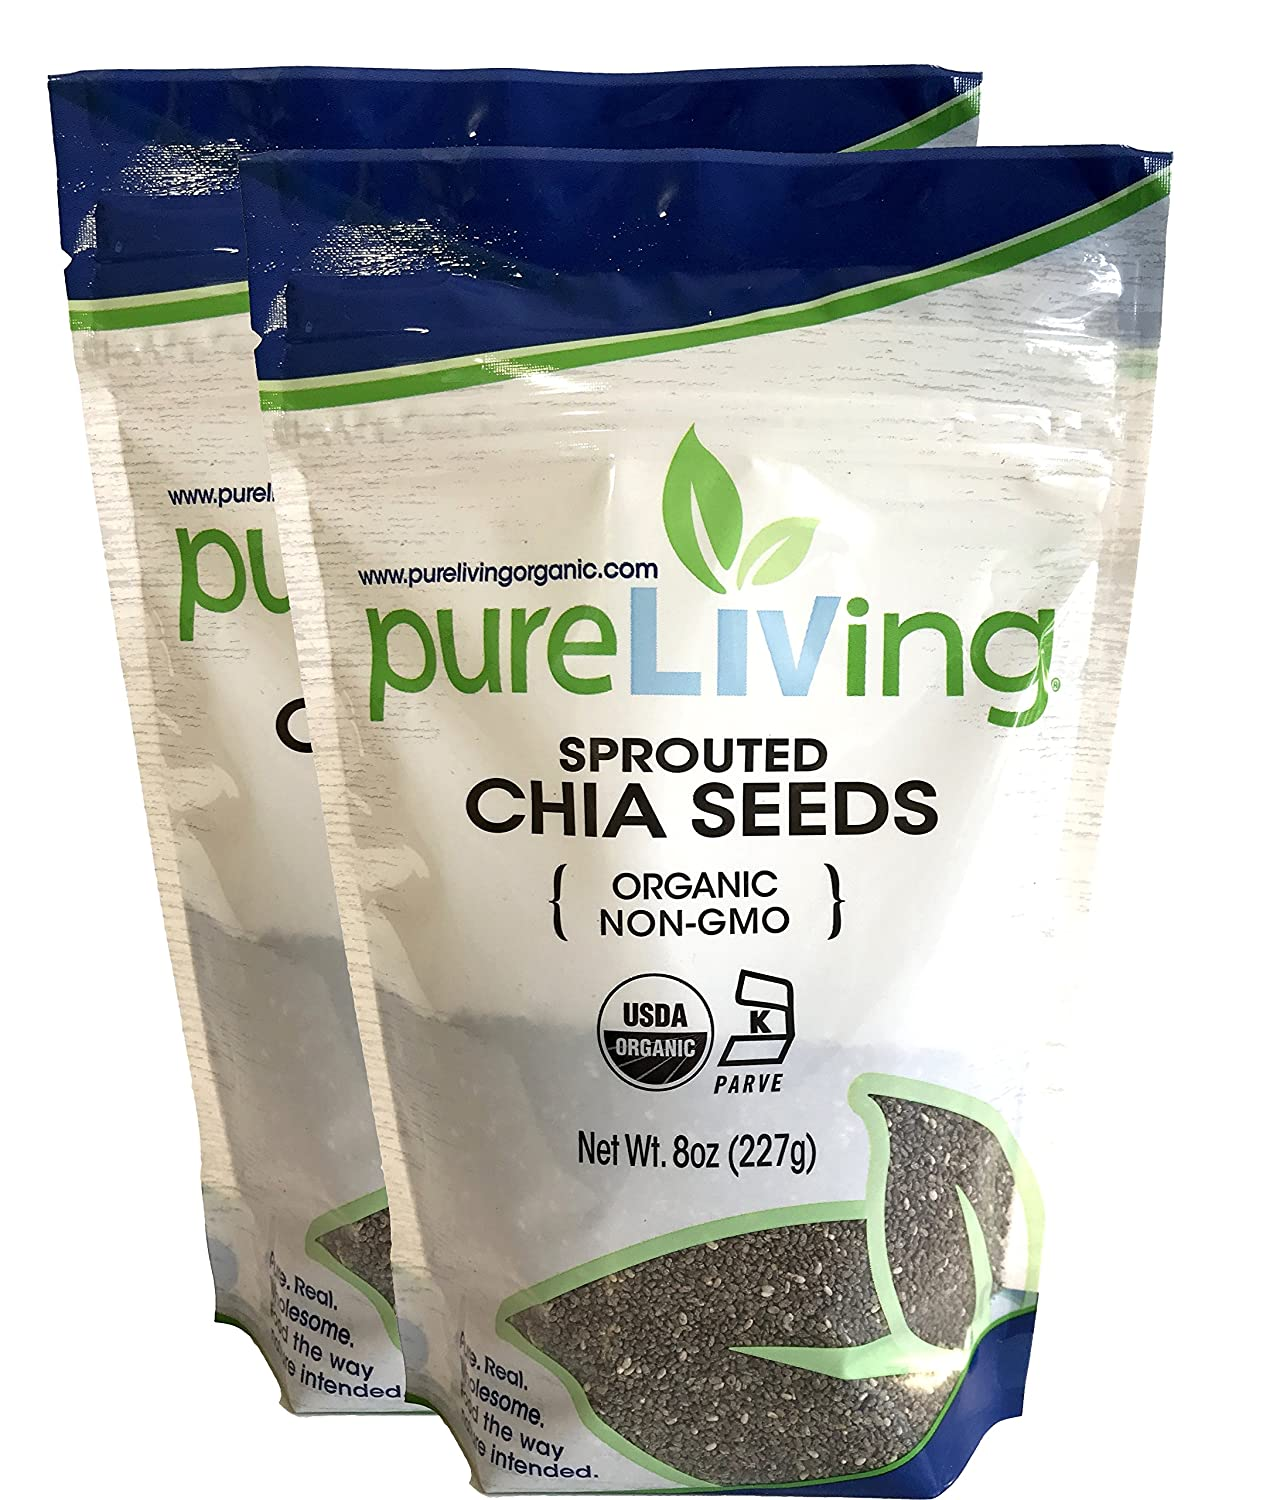 Pure Living - Organic Sprouted Chia Seeds, 2 Packs - 8 Ounce each